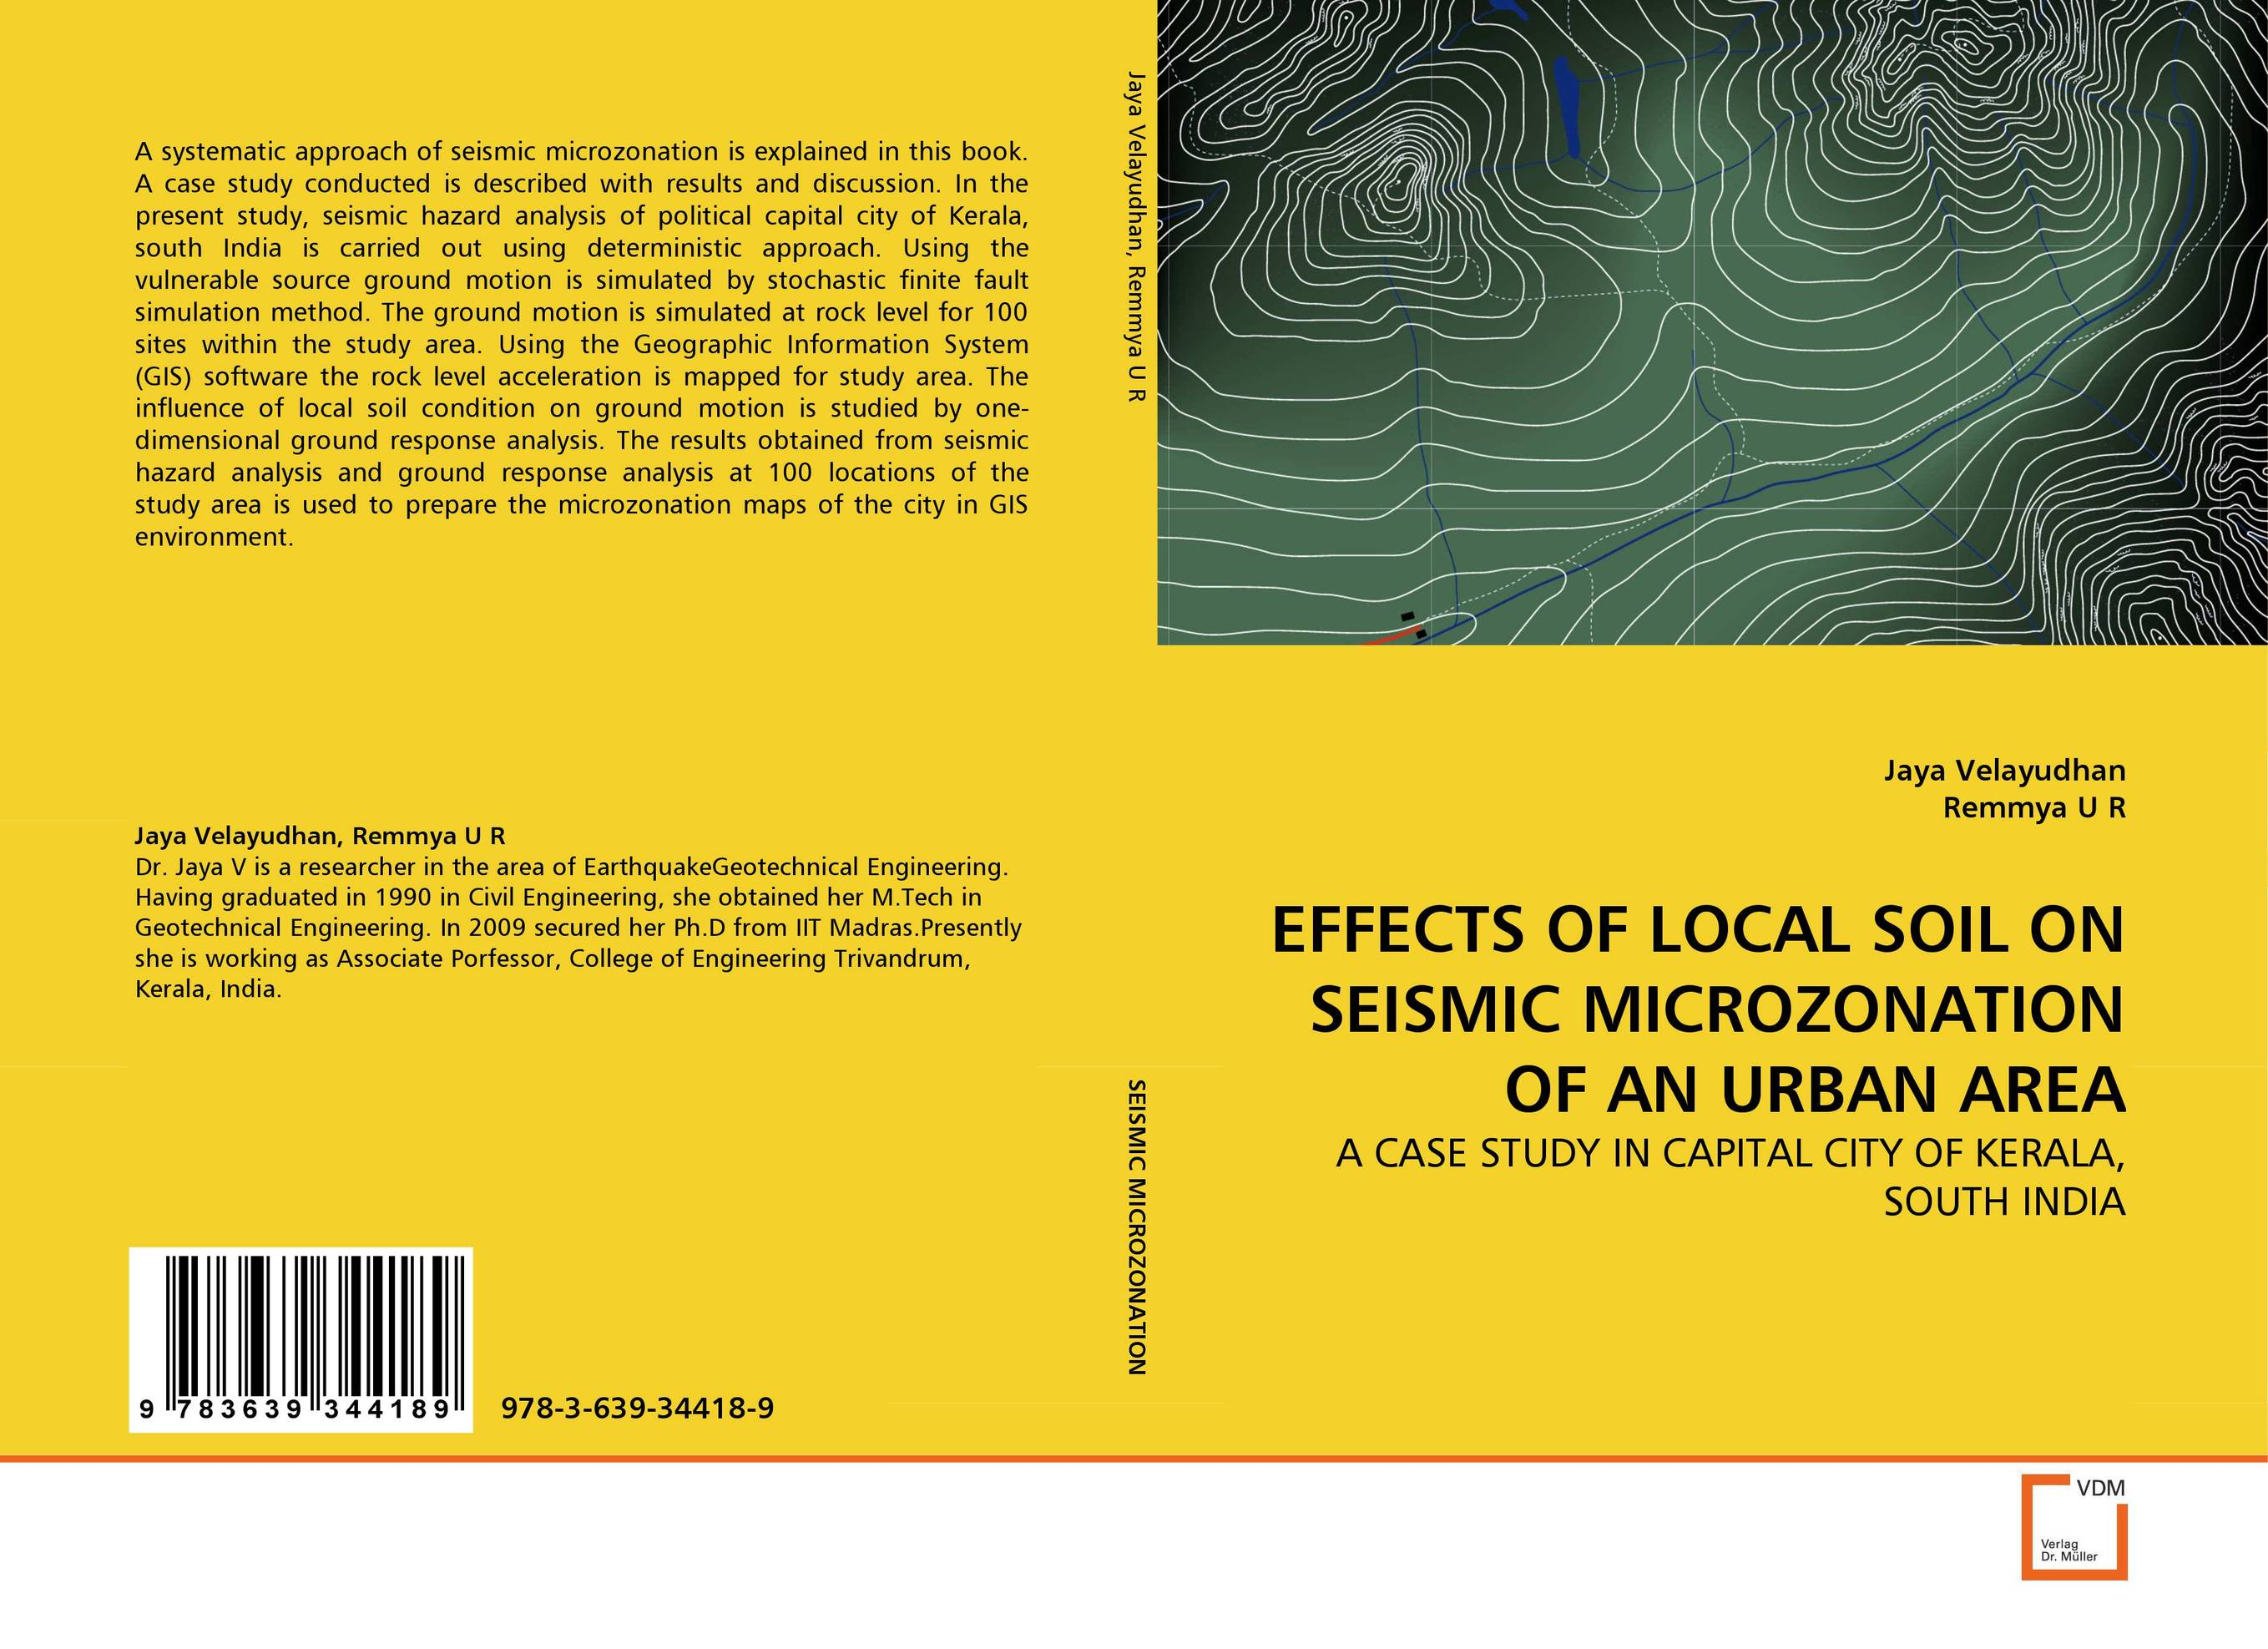 EFFECTS OF LOCAL SOIL ON SEISMIC MICROZONATION OF AN URBAN AREA